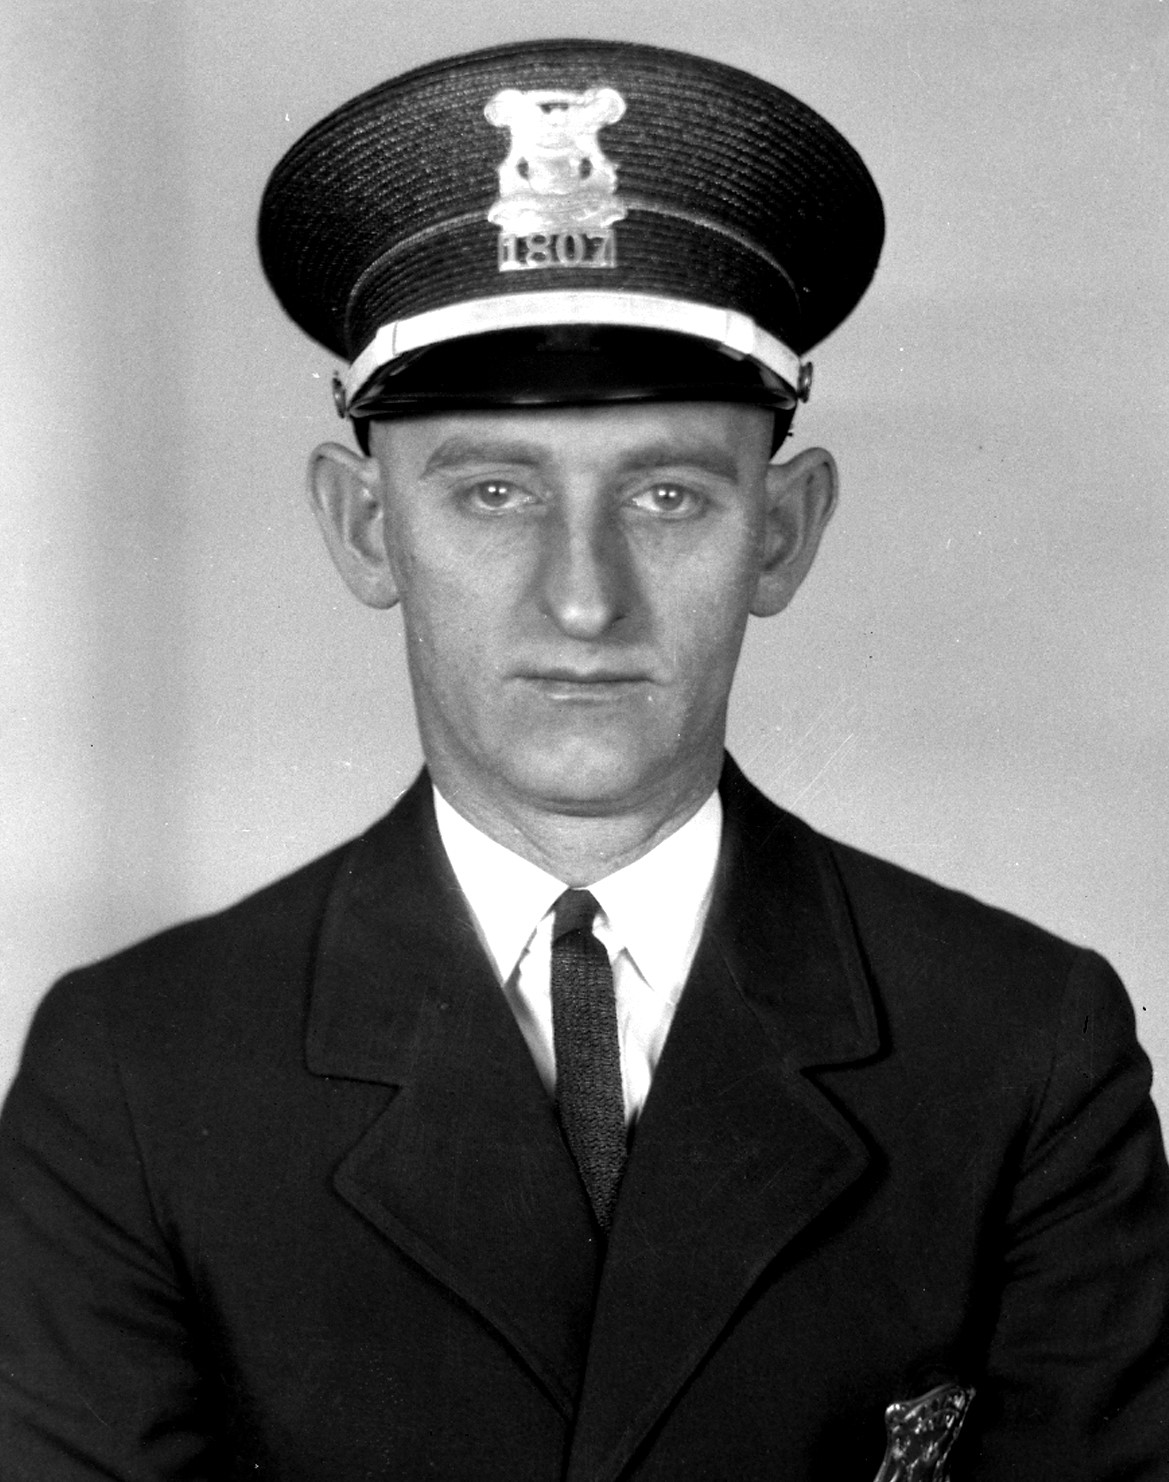 Police Officer Frank J. Winarski | Detroit Police Department, Michigan